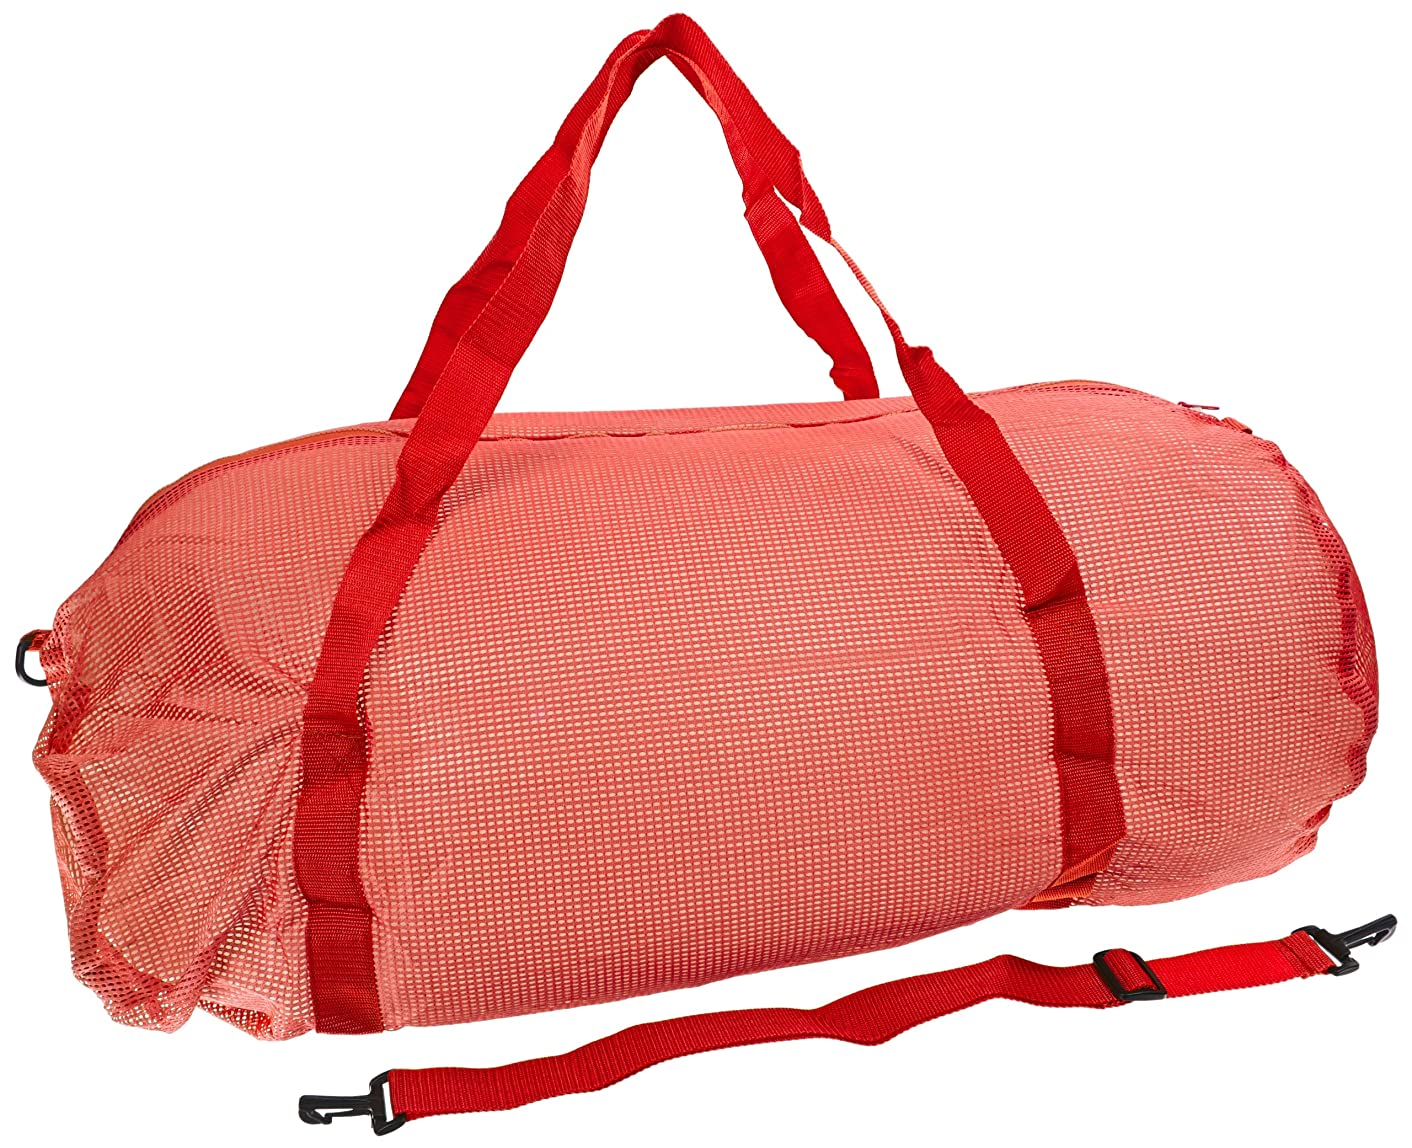 Sportime Oversized Mesh Duffel Bag - 36 x 15 inches - Red